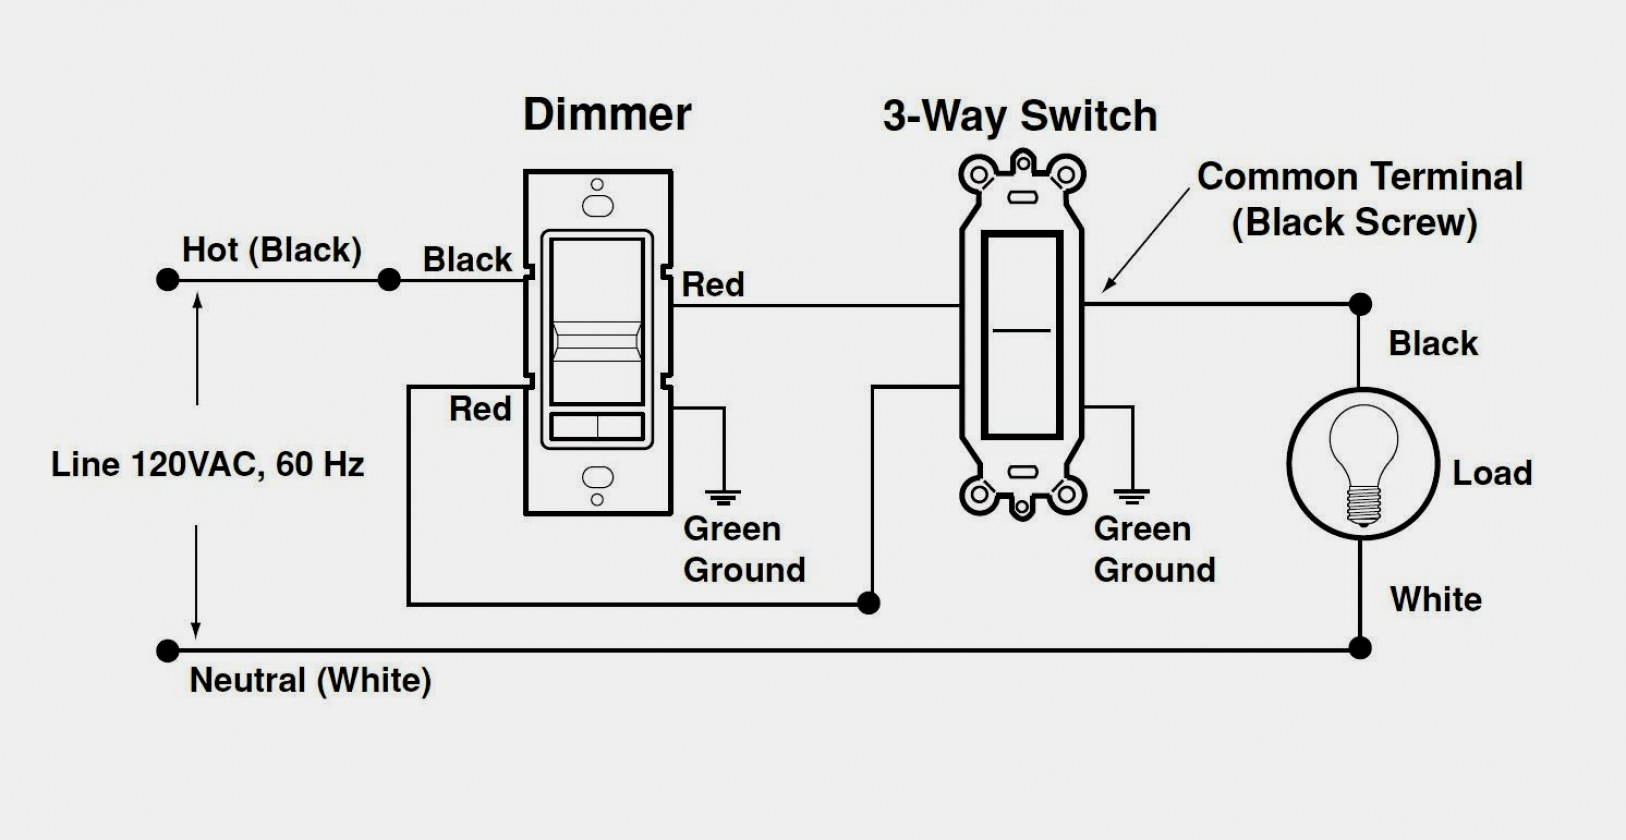 3 Wire Dimmer Switch Diagram | Wiring Diagram - Lutron 3 Way Dimmer Wiring Diagram